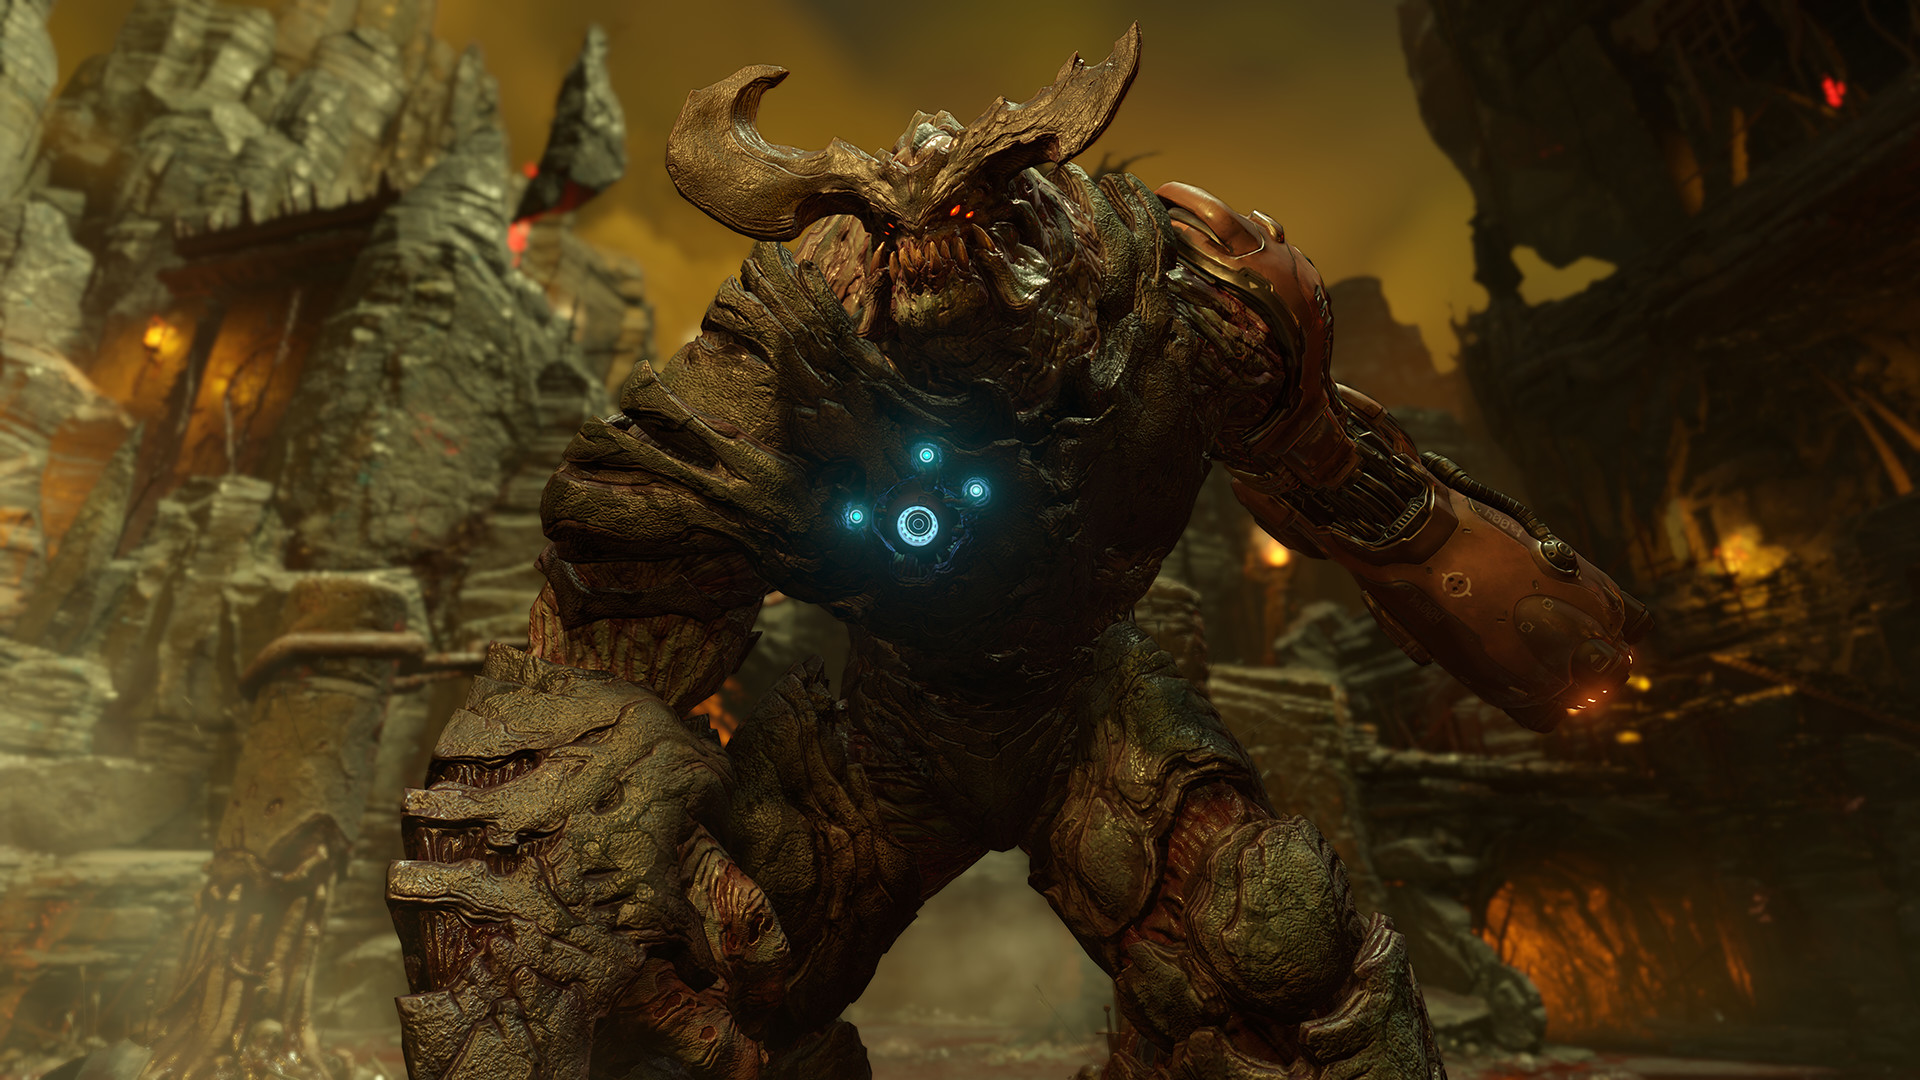 download doom 2016 ultimate digital super deluxe edition include all dlc and update global cd key free 2017 gratis for pc playstation 3 ps4 ps3 xbox one 360 complex iso gog cpy games release iso nfo copiapop diskokosmiko